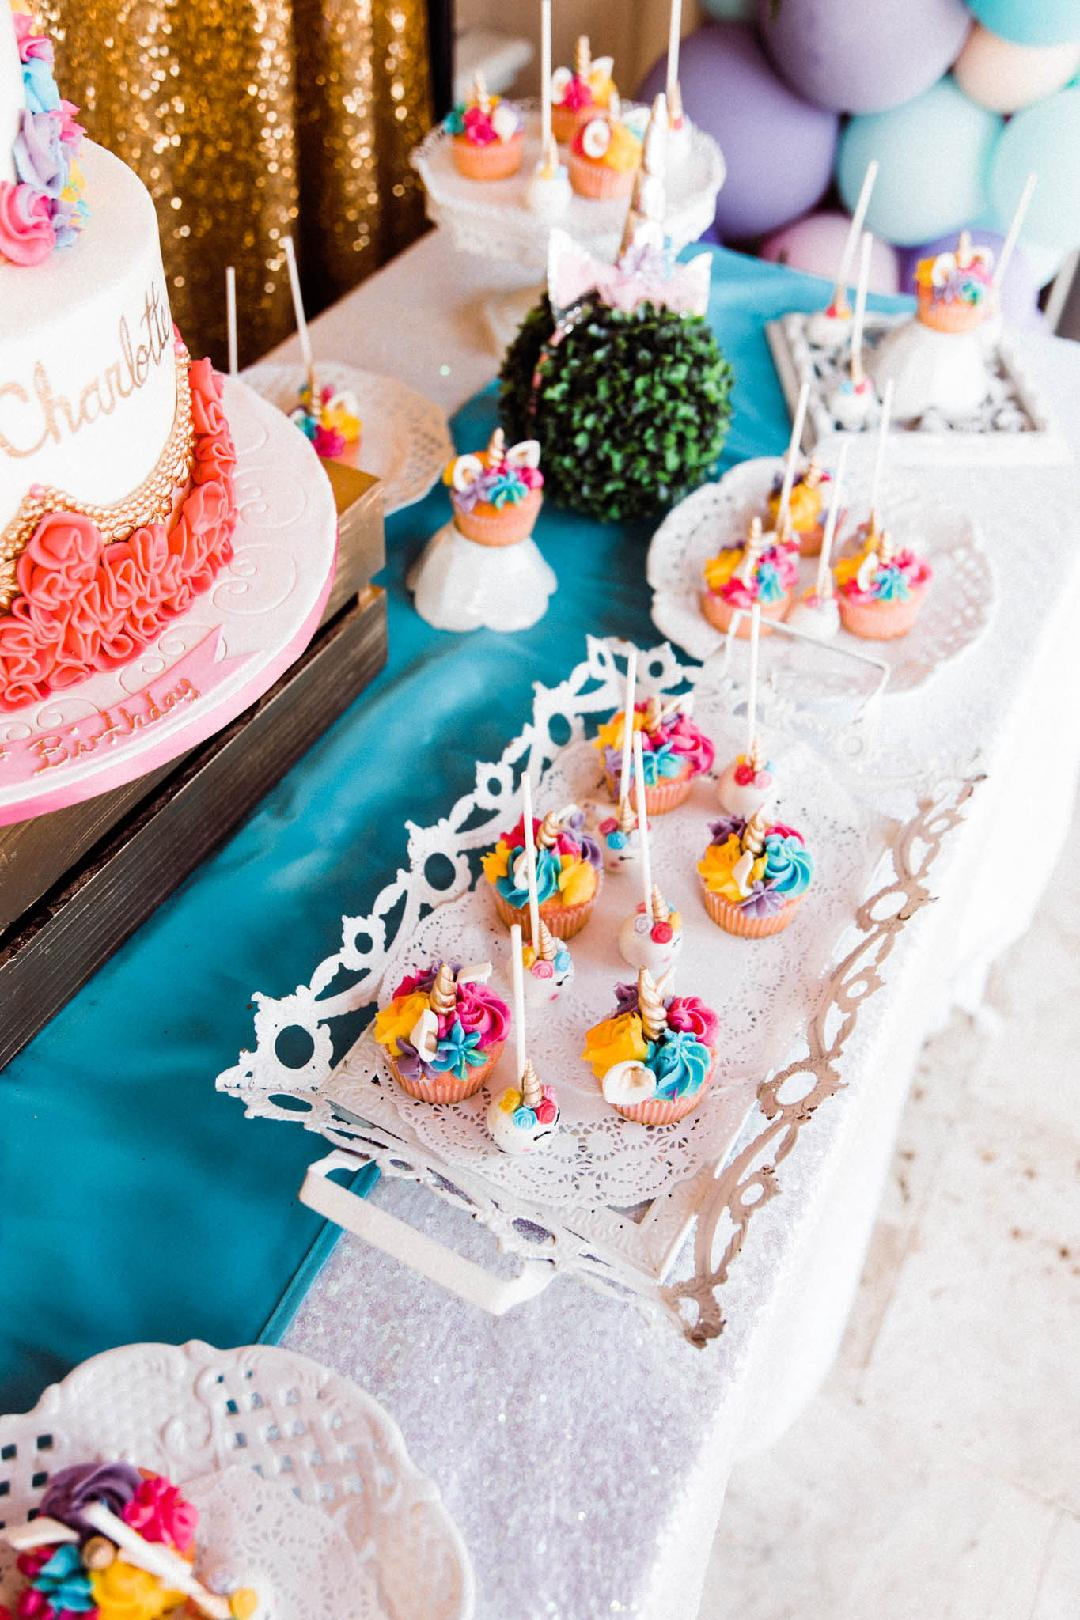 houston kids birthday party planner rainbows and wishes 14.jpg